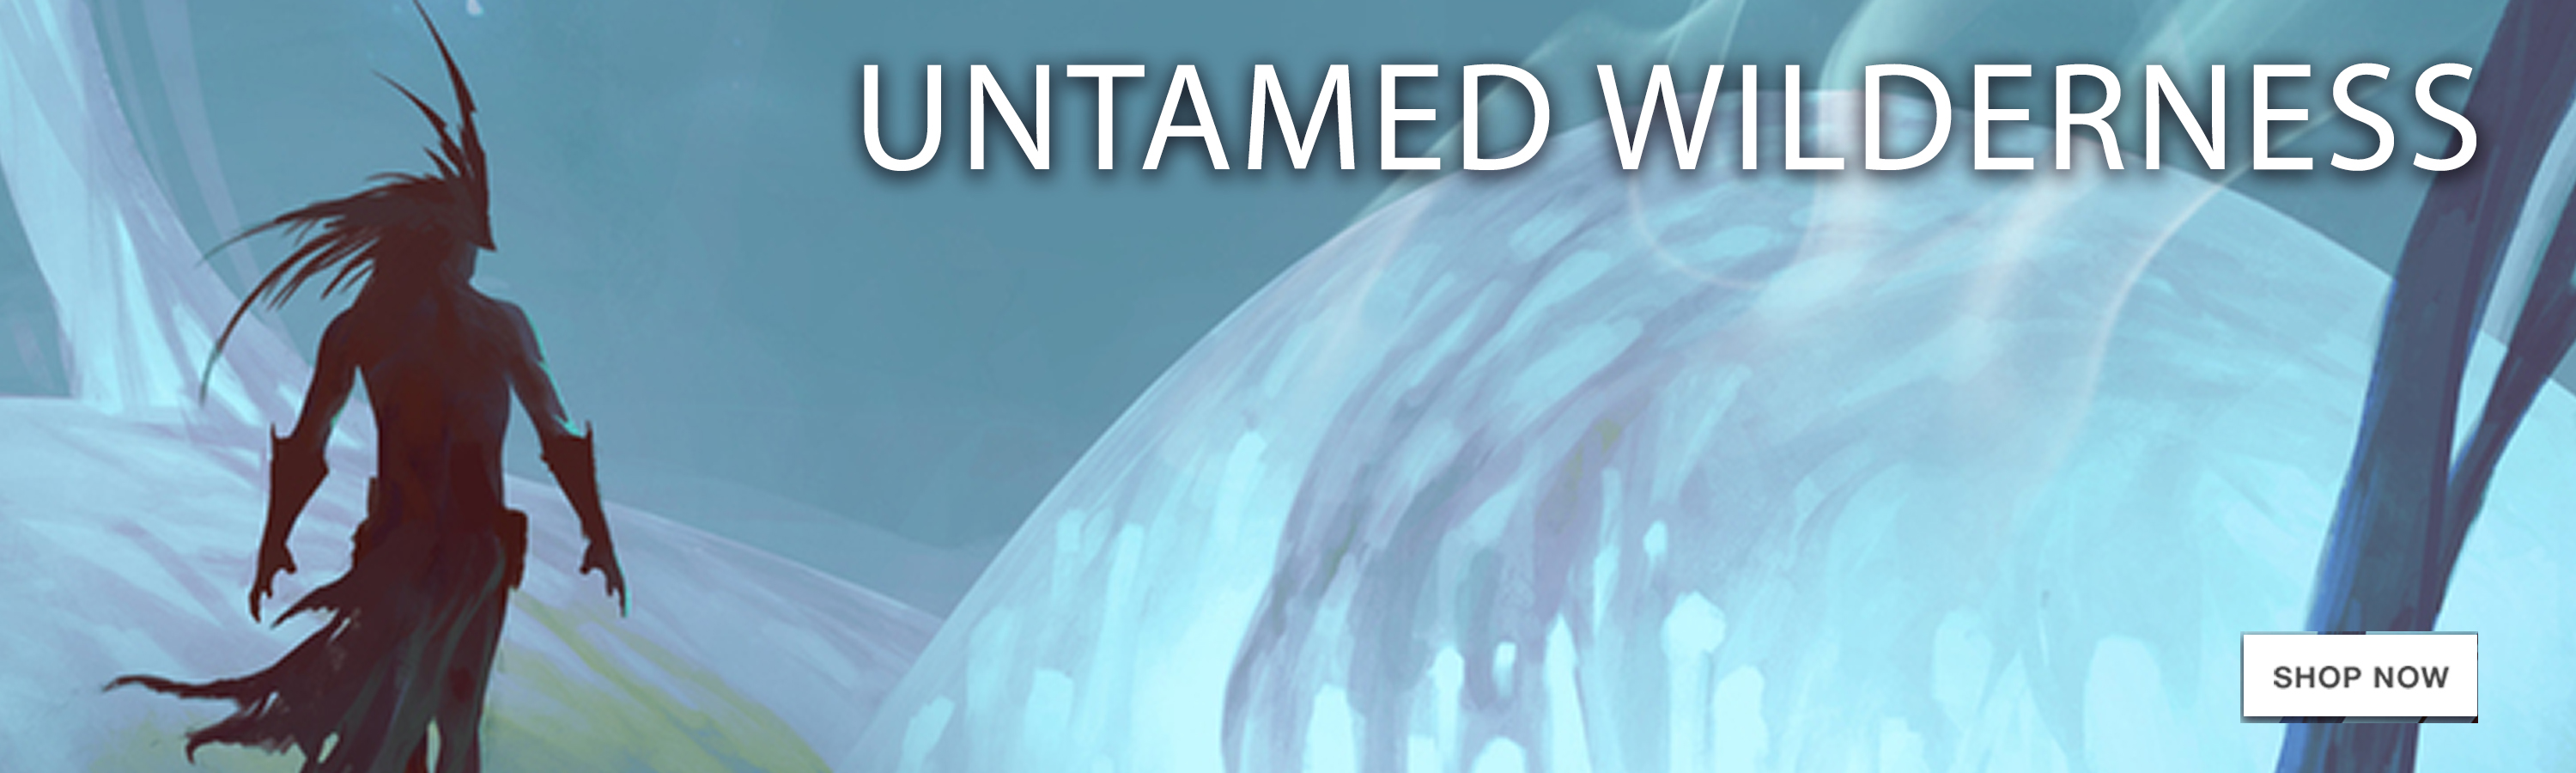 Untamed Wildernessl-jumbo-ad